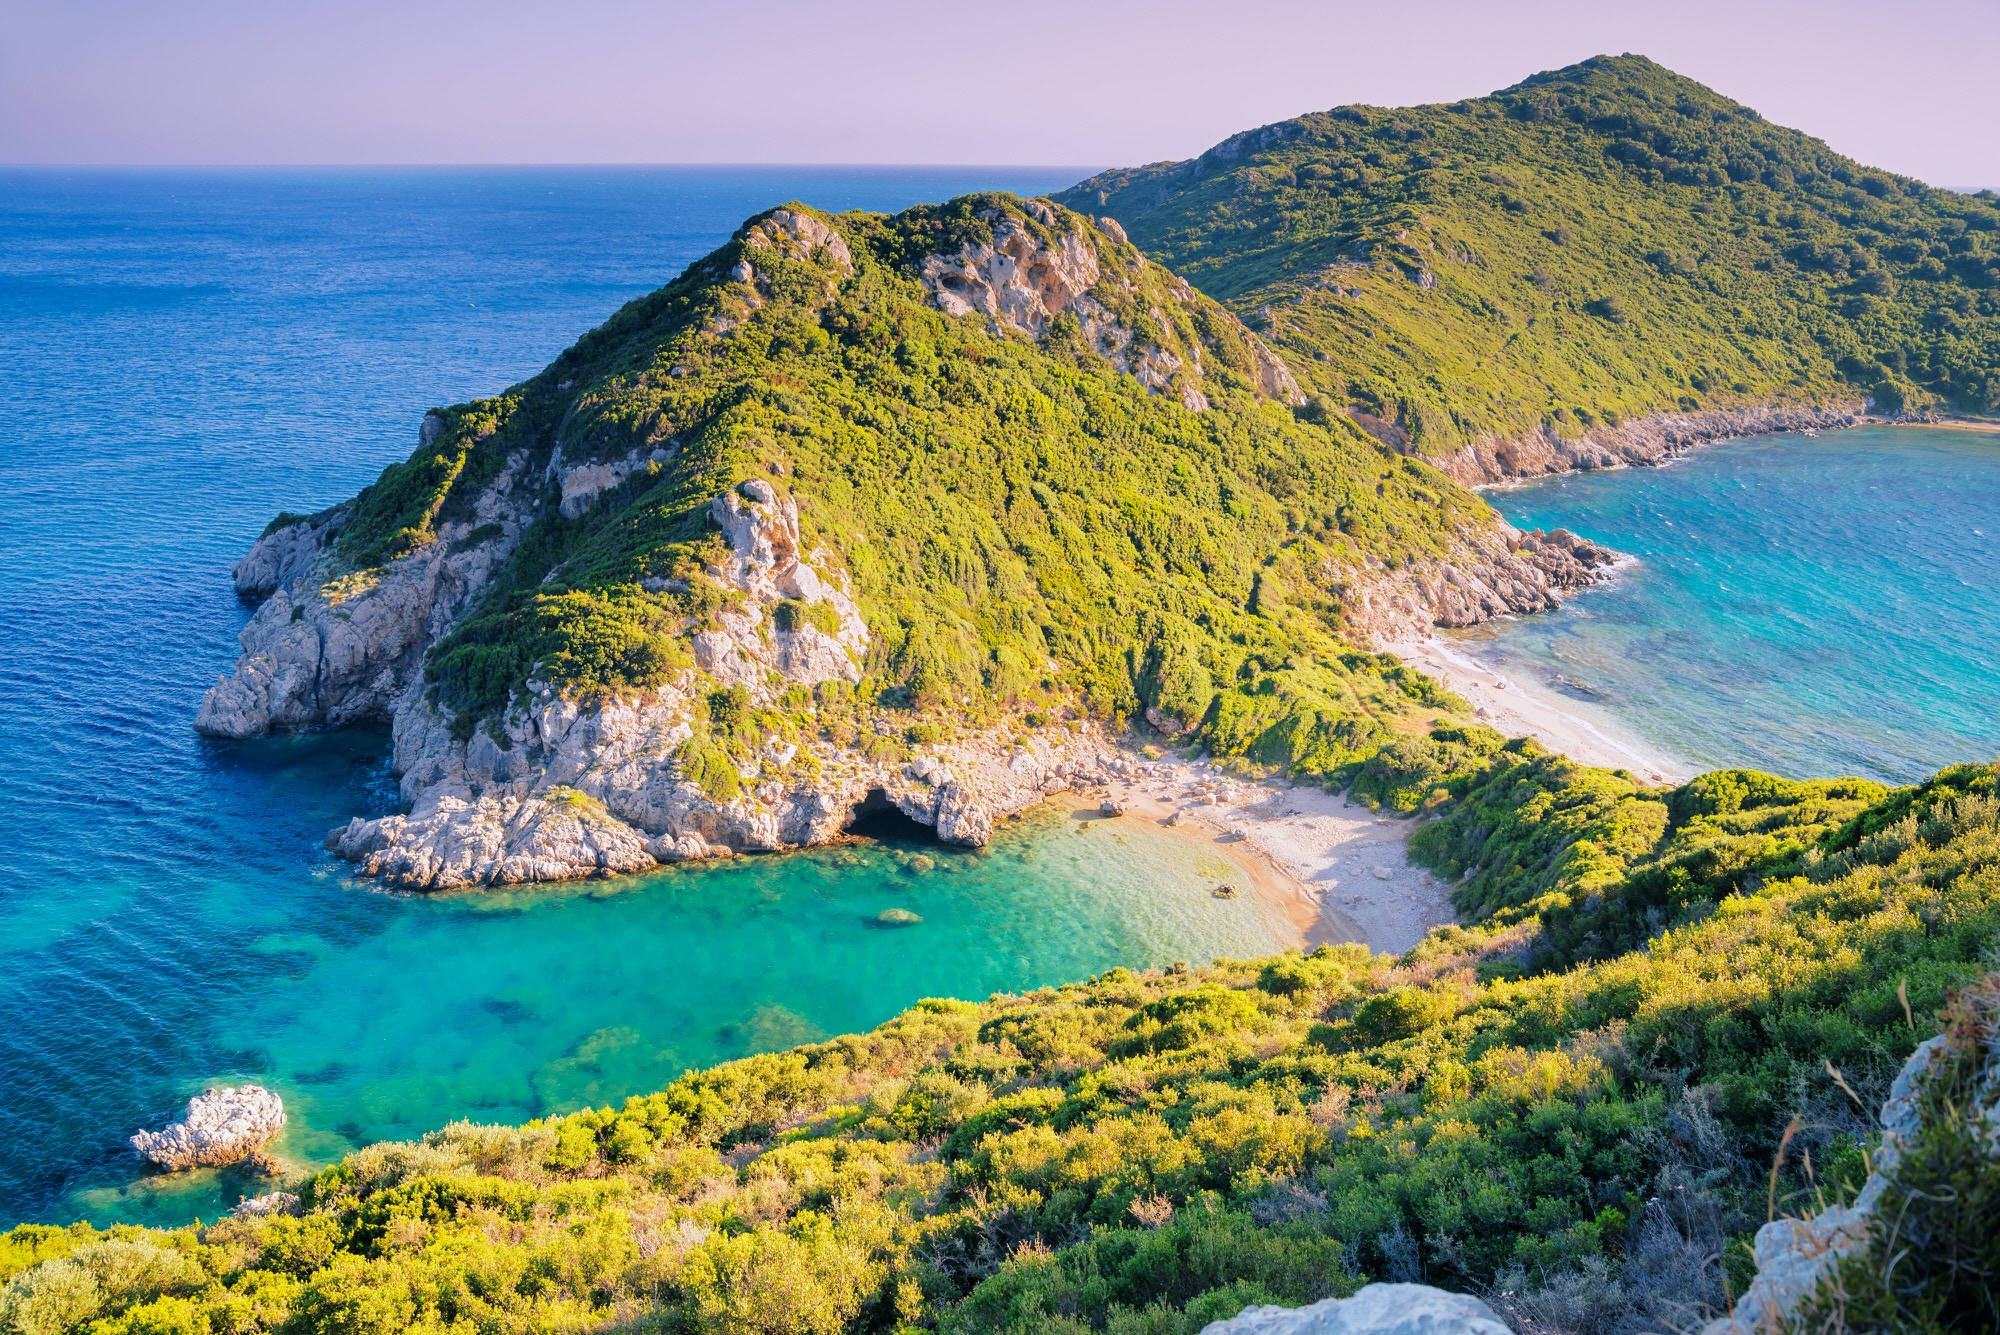 Agios Georgios beach in sunset, Corfu island, Greece © Elena Pavlovich / Shutterstock